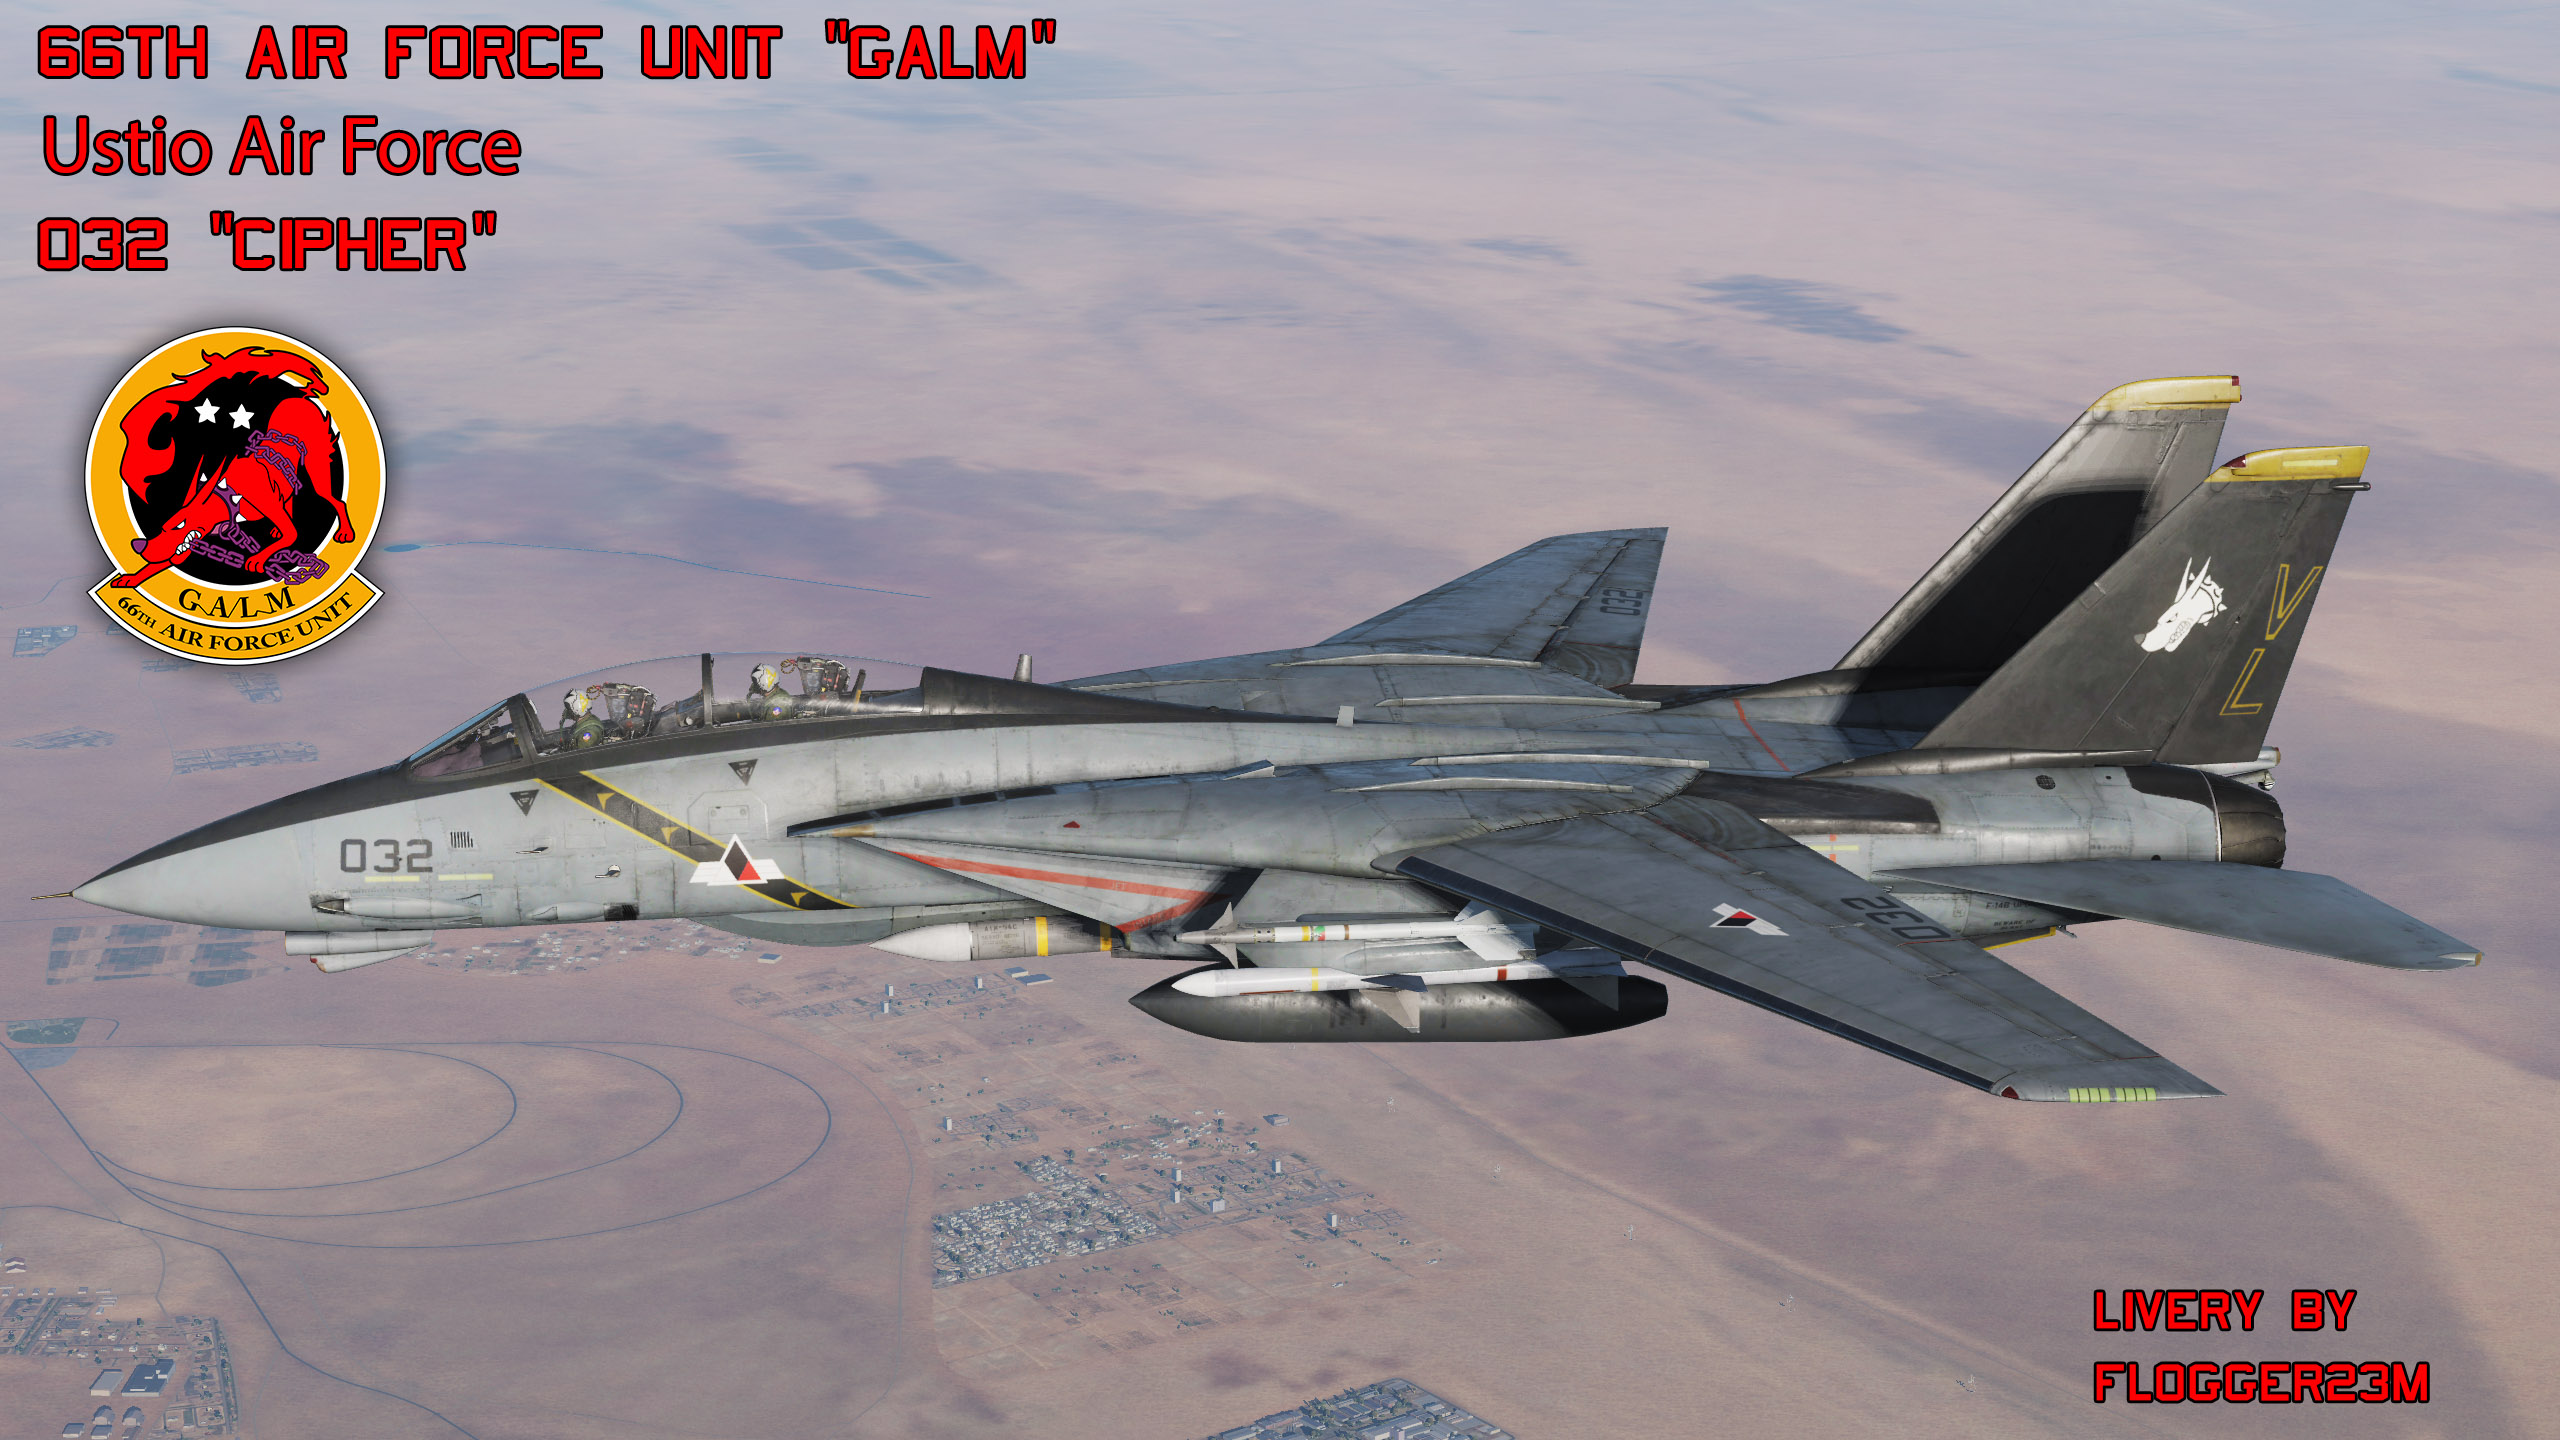 Galm Team 66th Air Force Unit 032 Cipher - Livery for F-14B - By Flogger23m